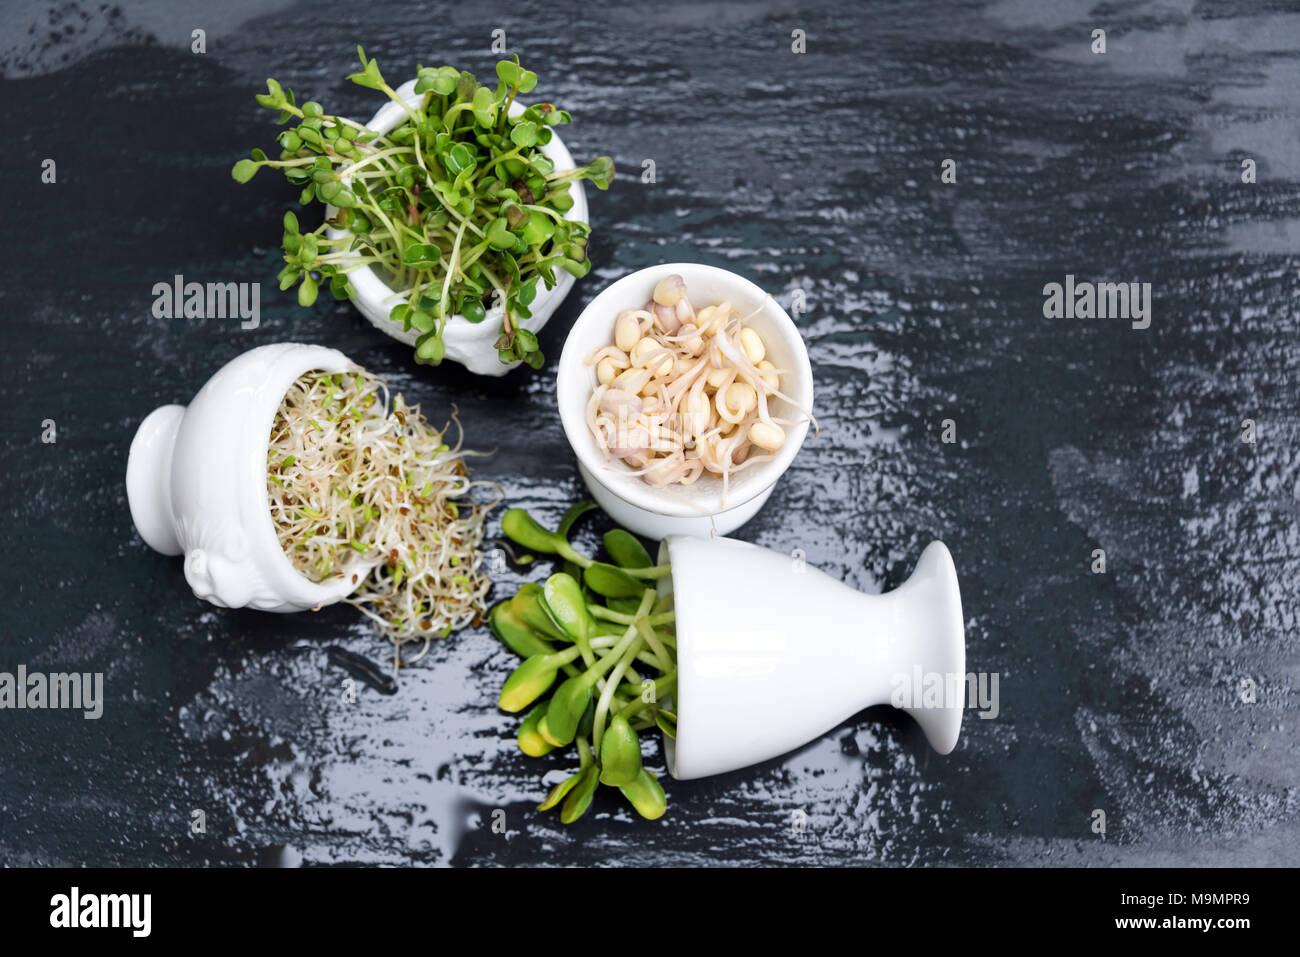 Different Types Of Micro Greens In White Bowls For Sauces On Wet